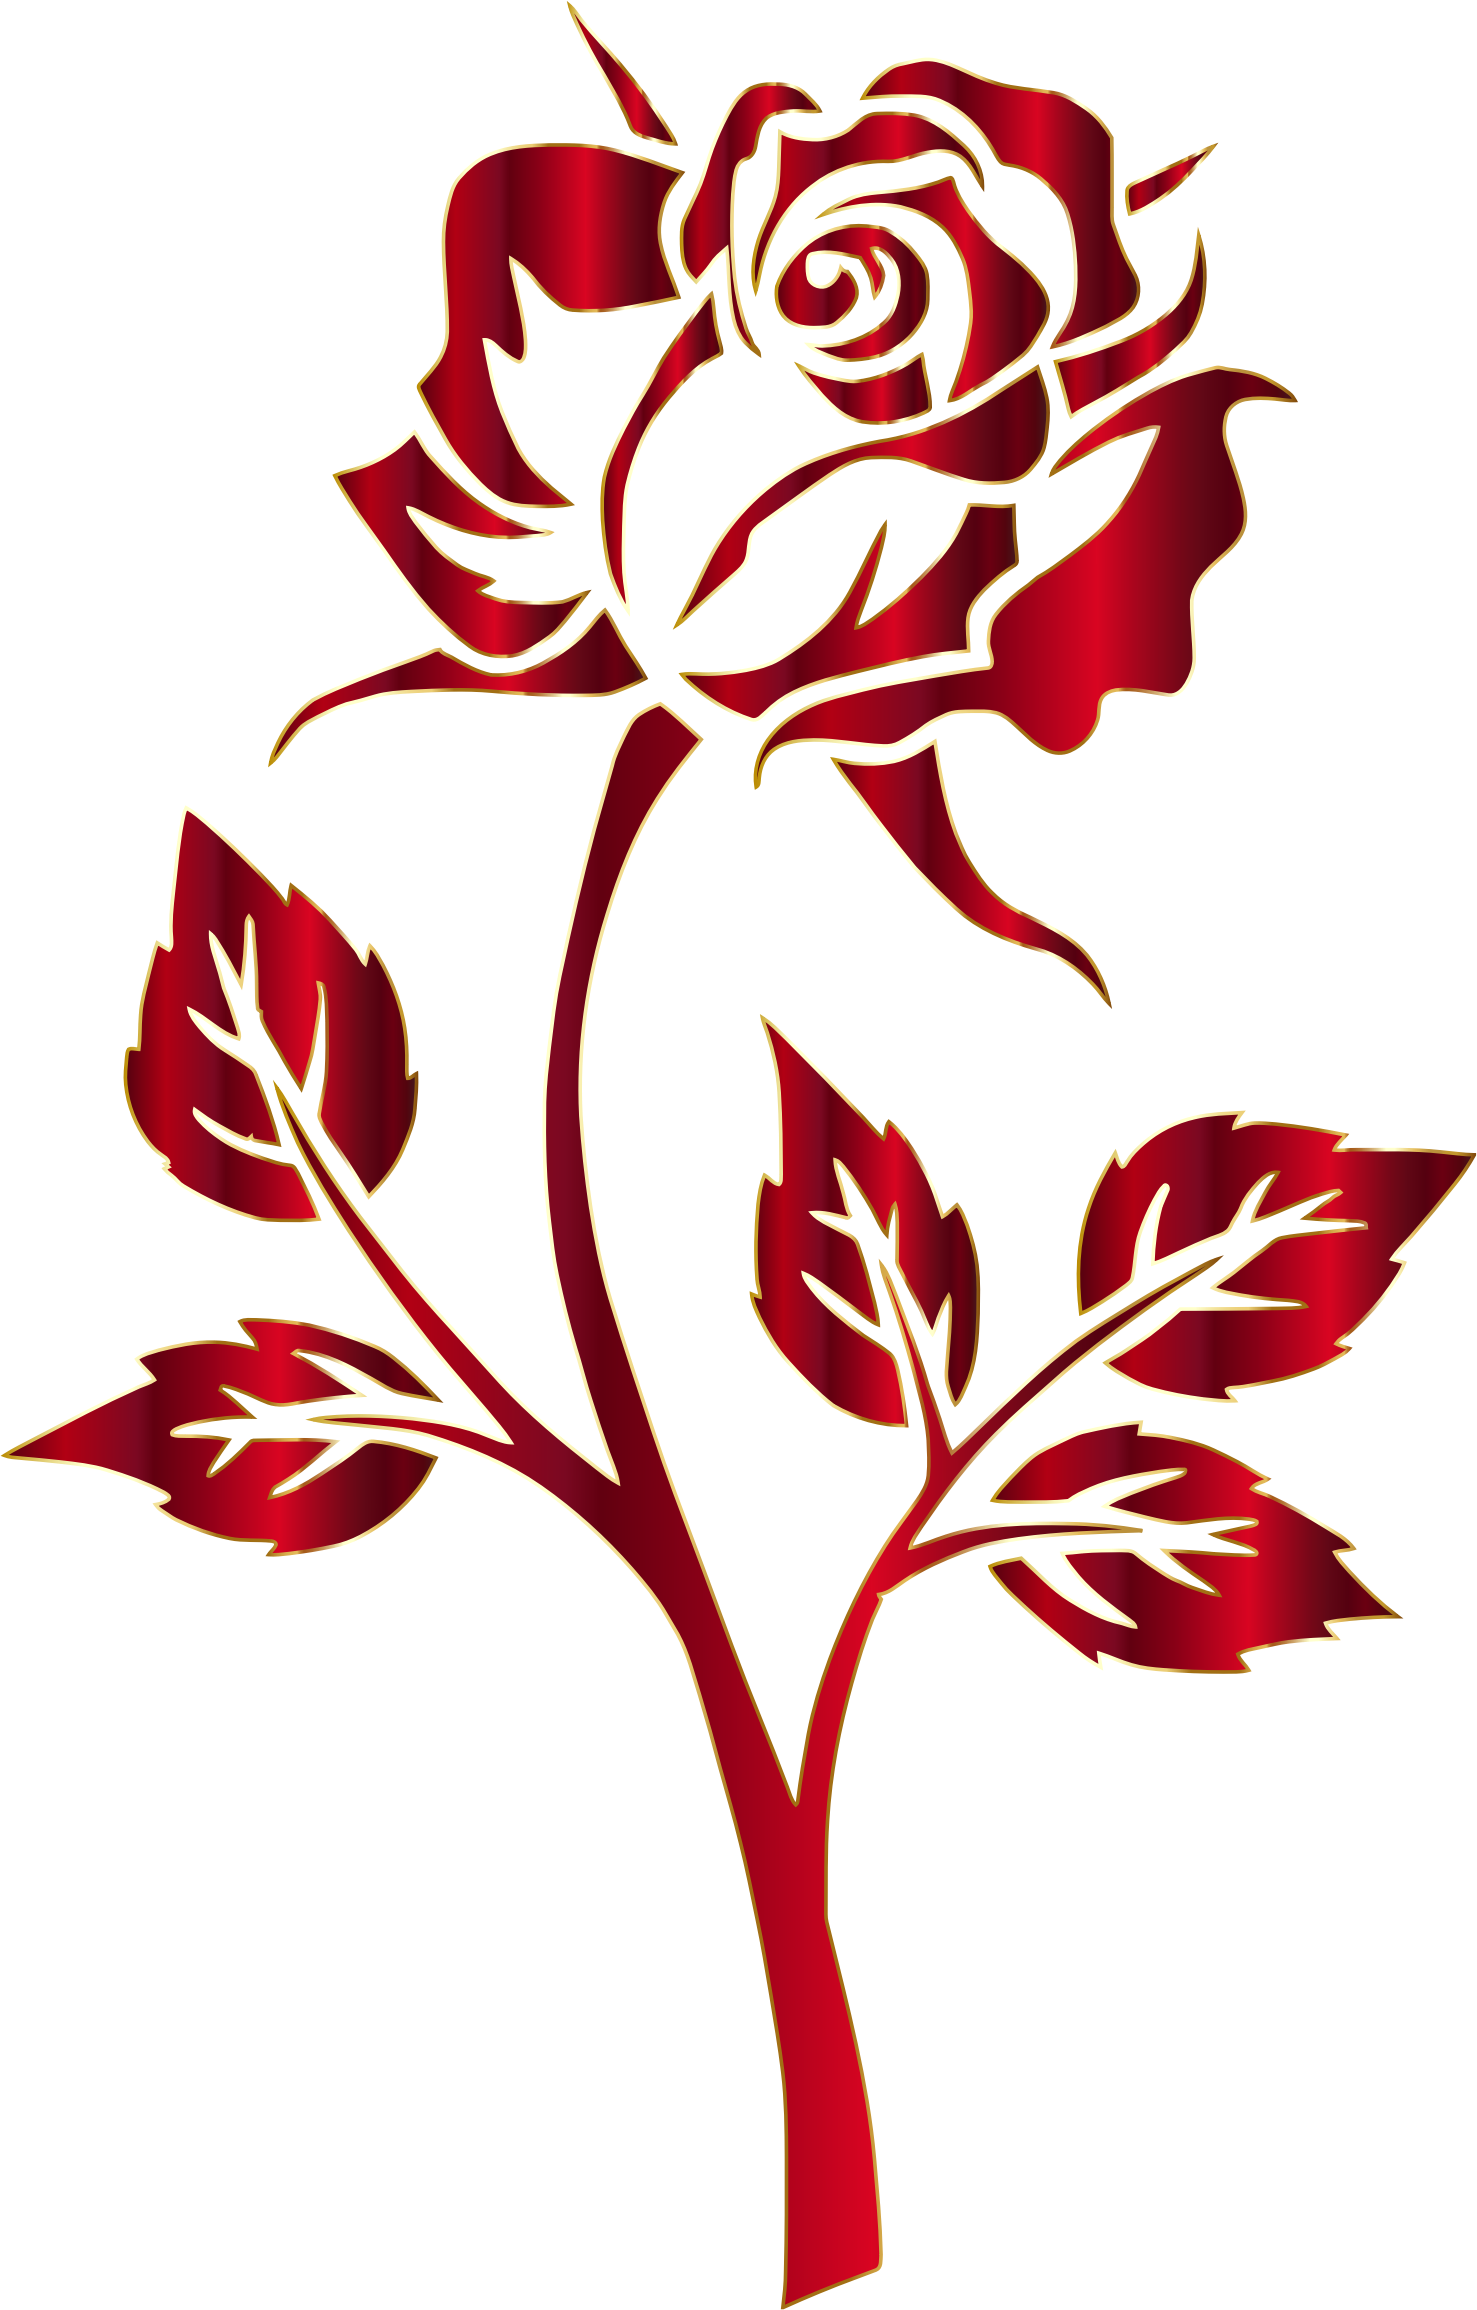 Stencil svg rose. Crimson silhouette no background